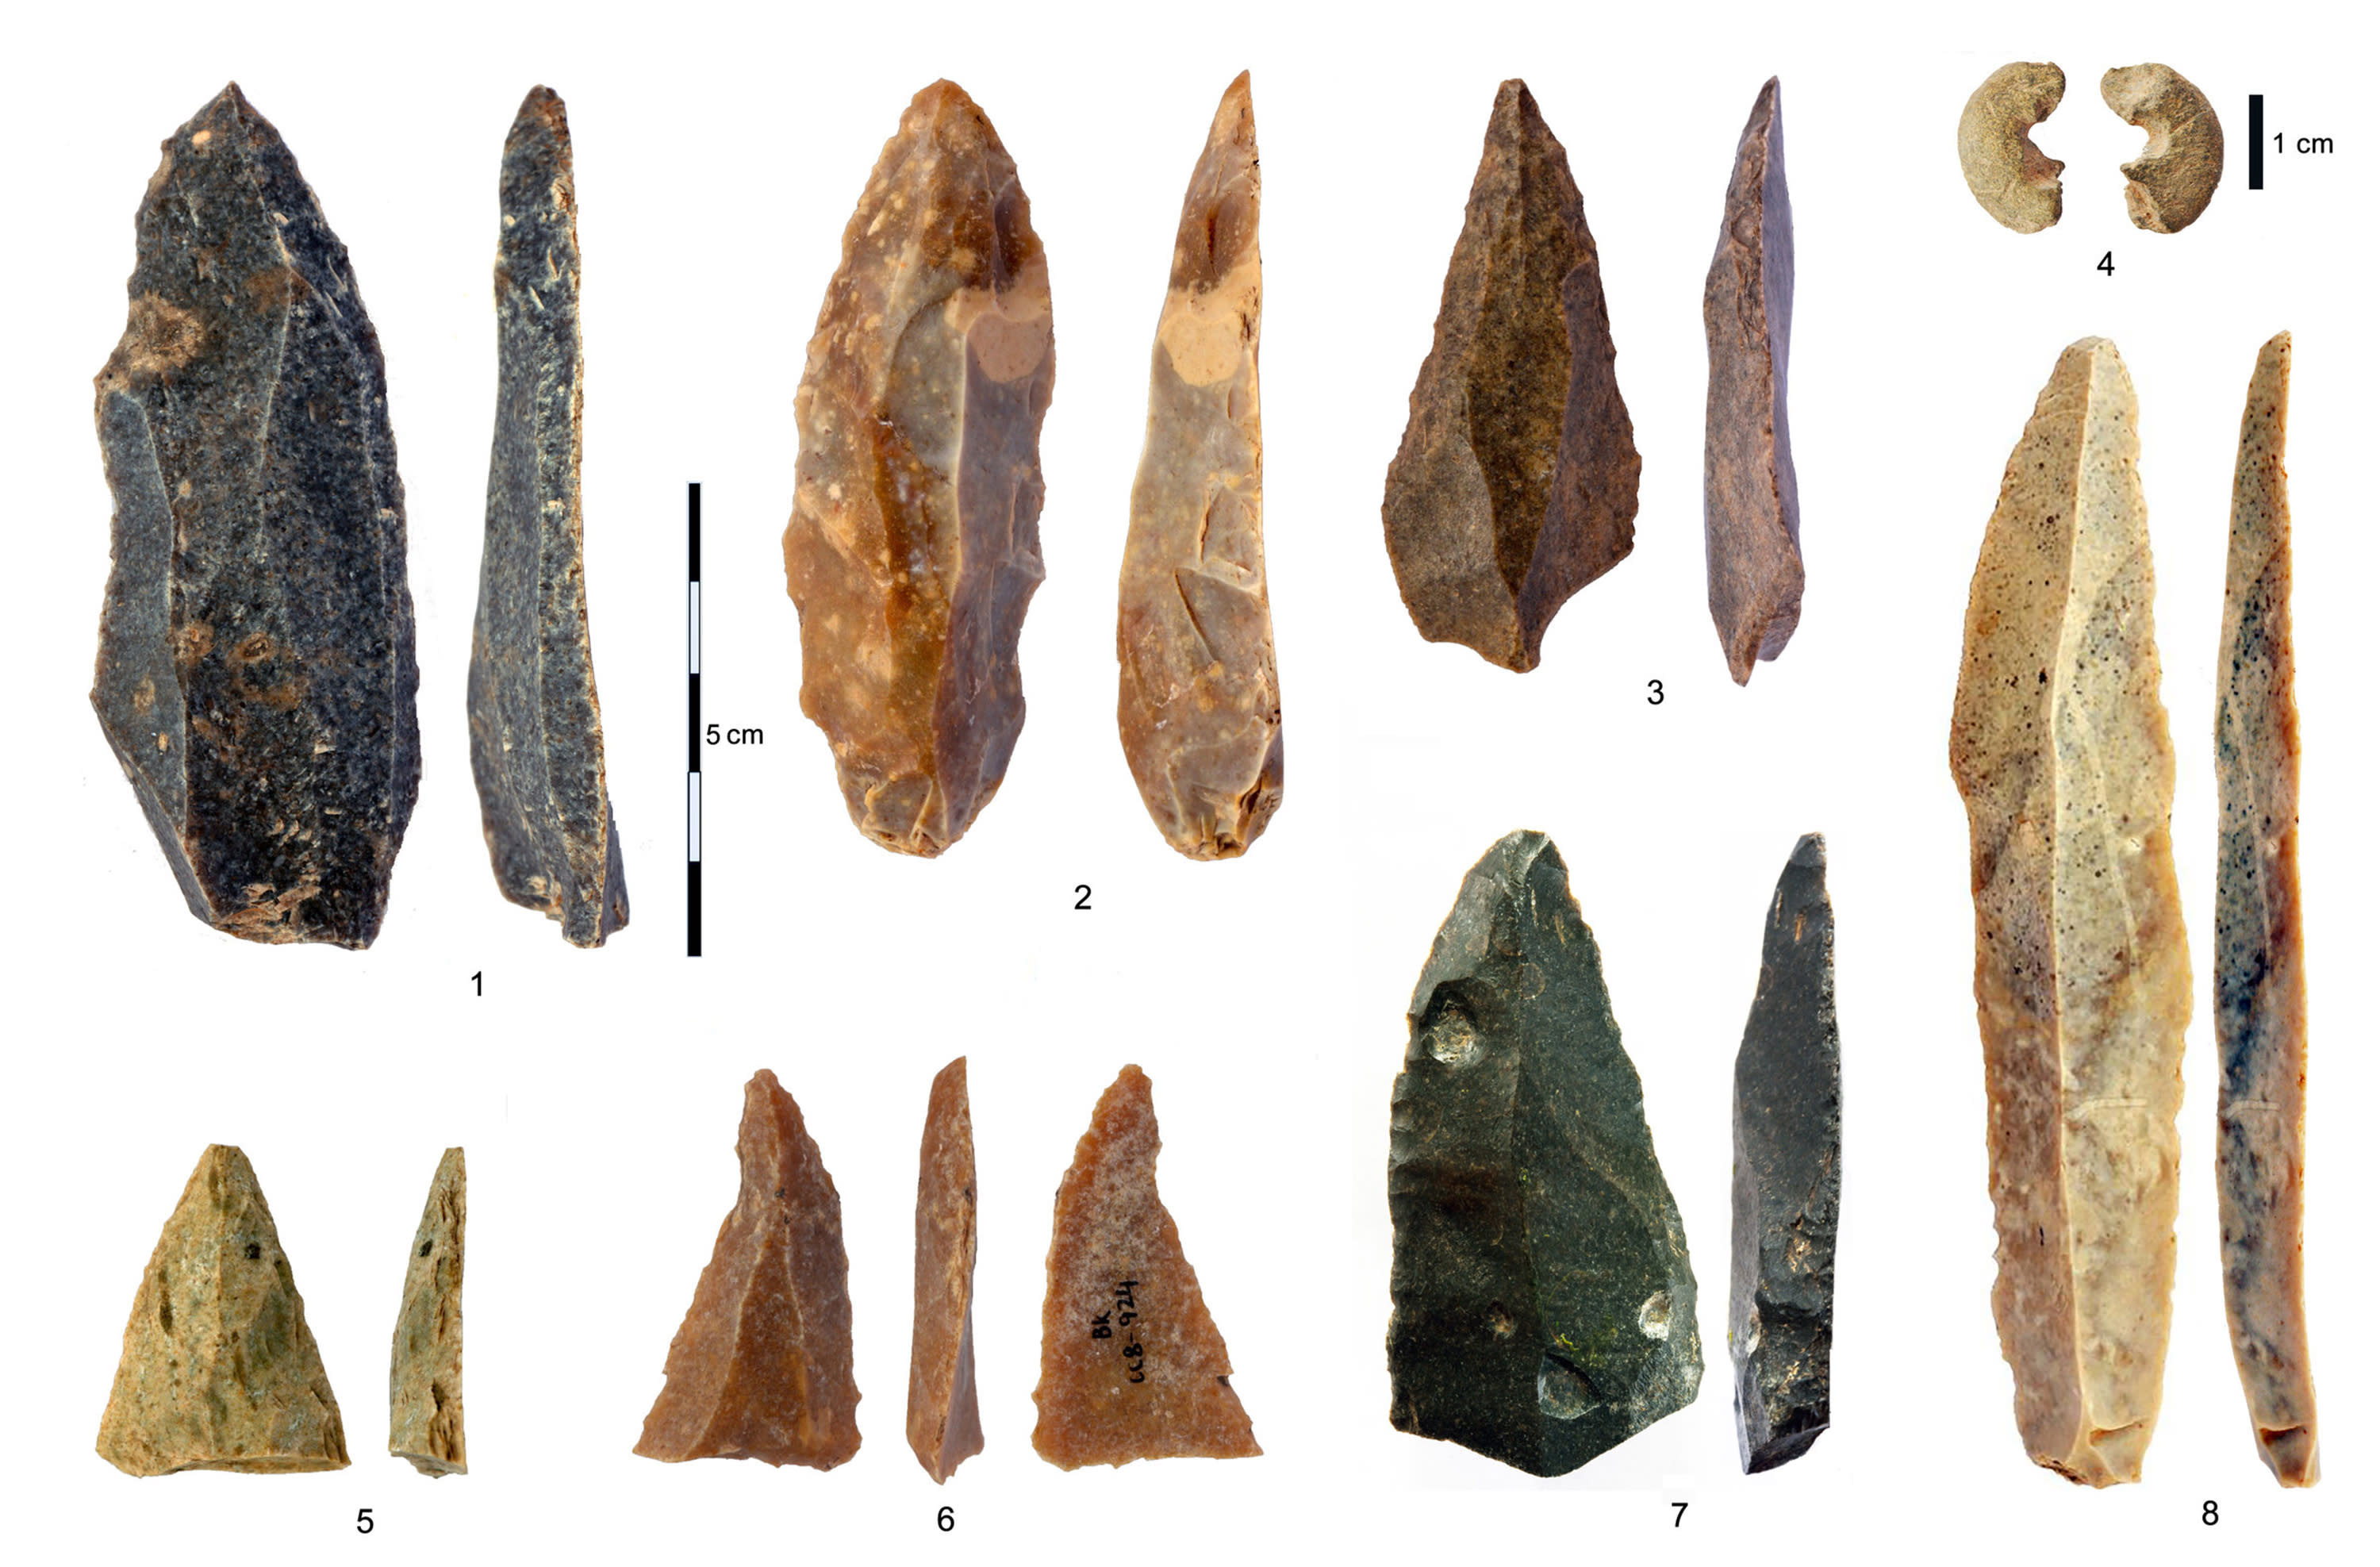 This image provided by Tsenka Tsanova in May 2020 shows stone artifacts from the Initial Upper Paleolithic discovered in the Bacho Kiro Cave in Bulgaria. Two new studies Monday, May 11, 2020, show that Homo sapiens bones found in the Bulgarian cave date back to as far as 46,000 years ago, which is thousands of years earlier than previous human fossils in Europe.(Tsenka Tsanova via AP)